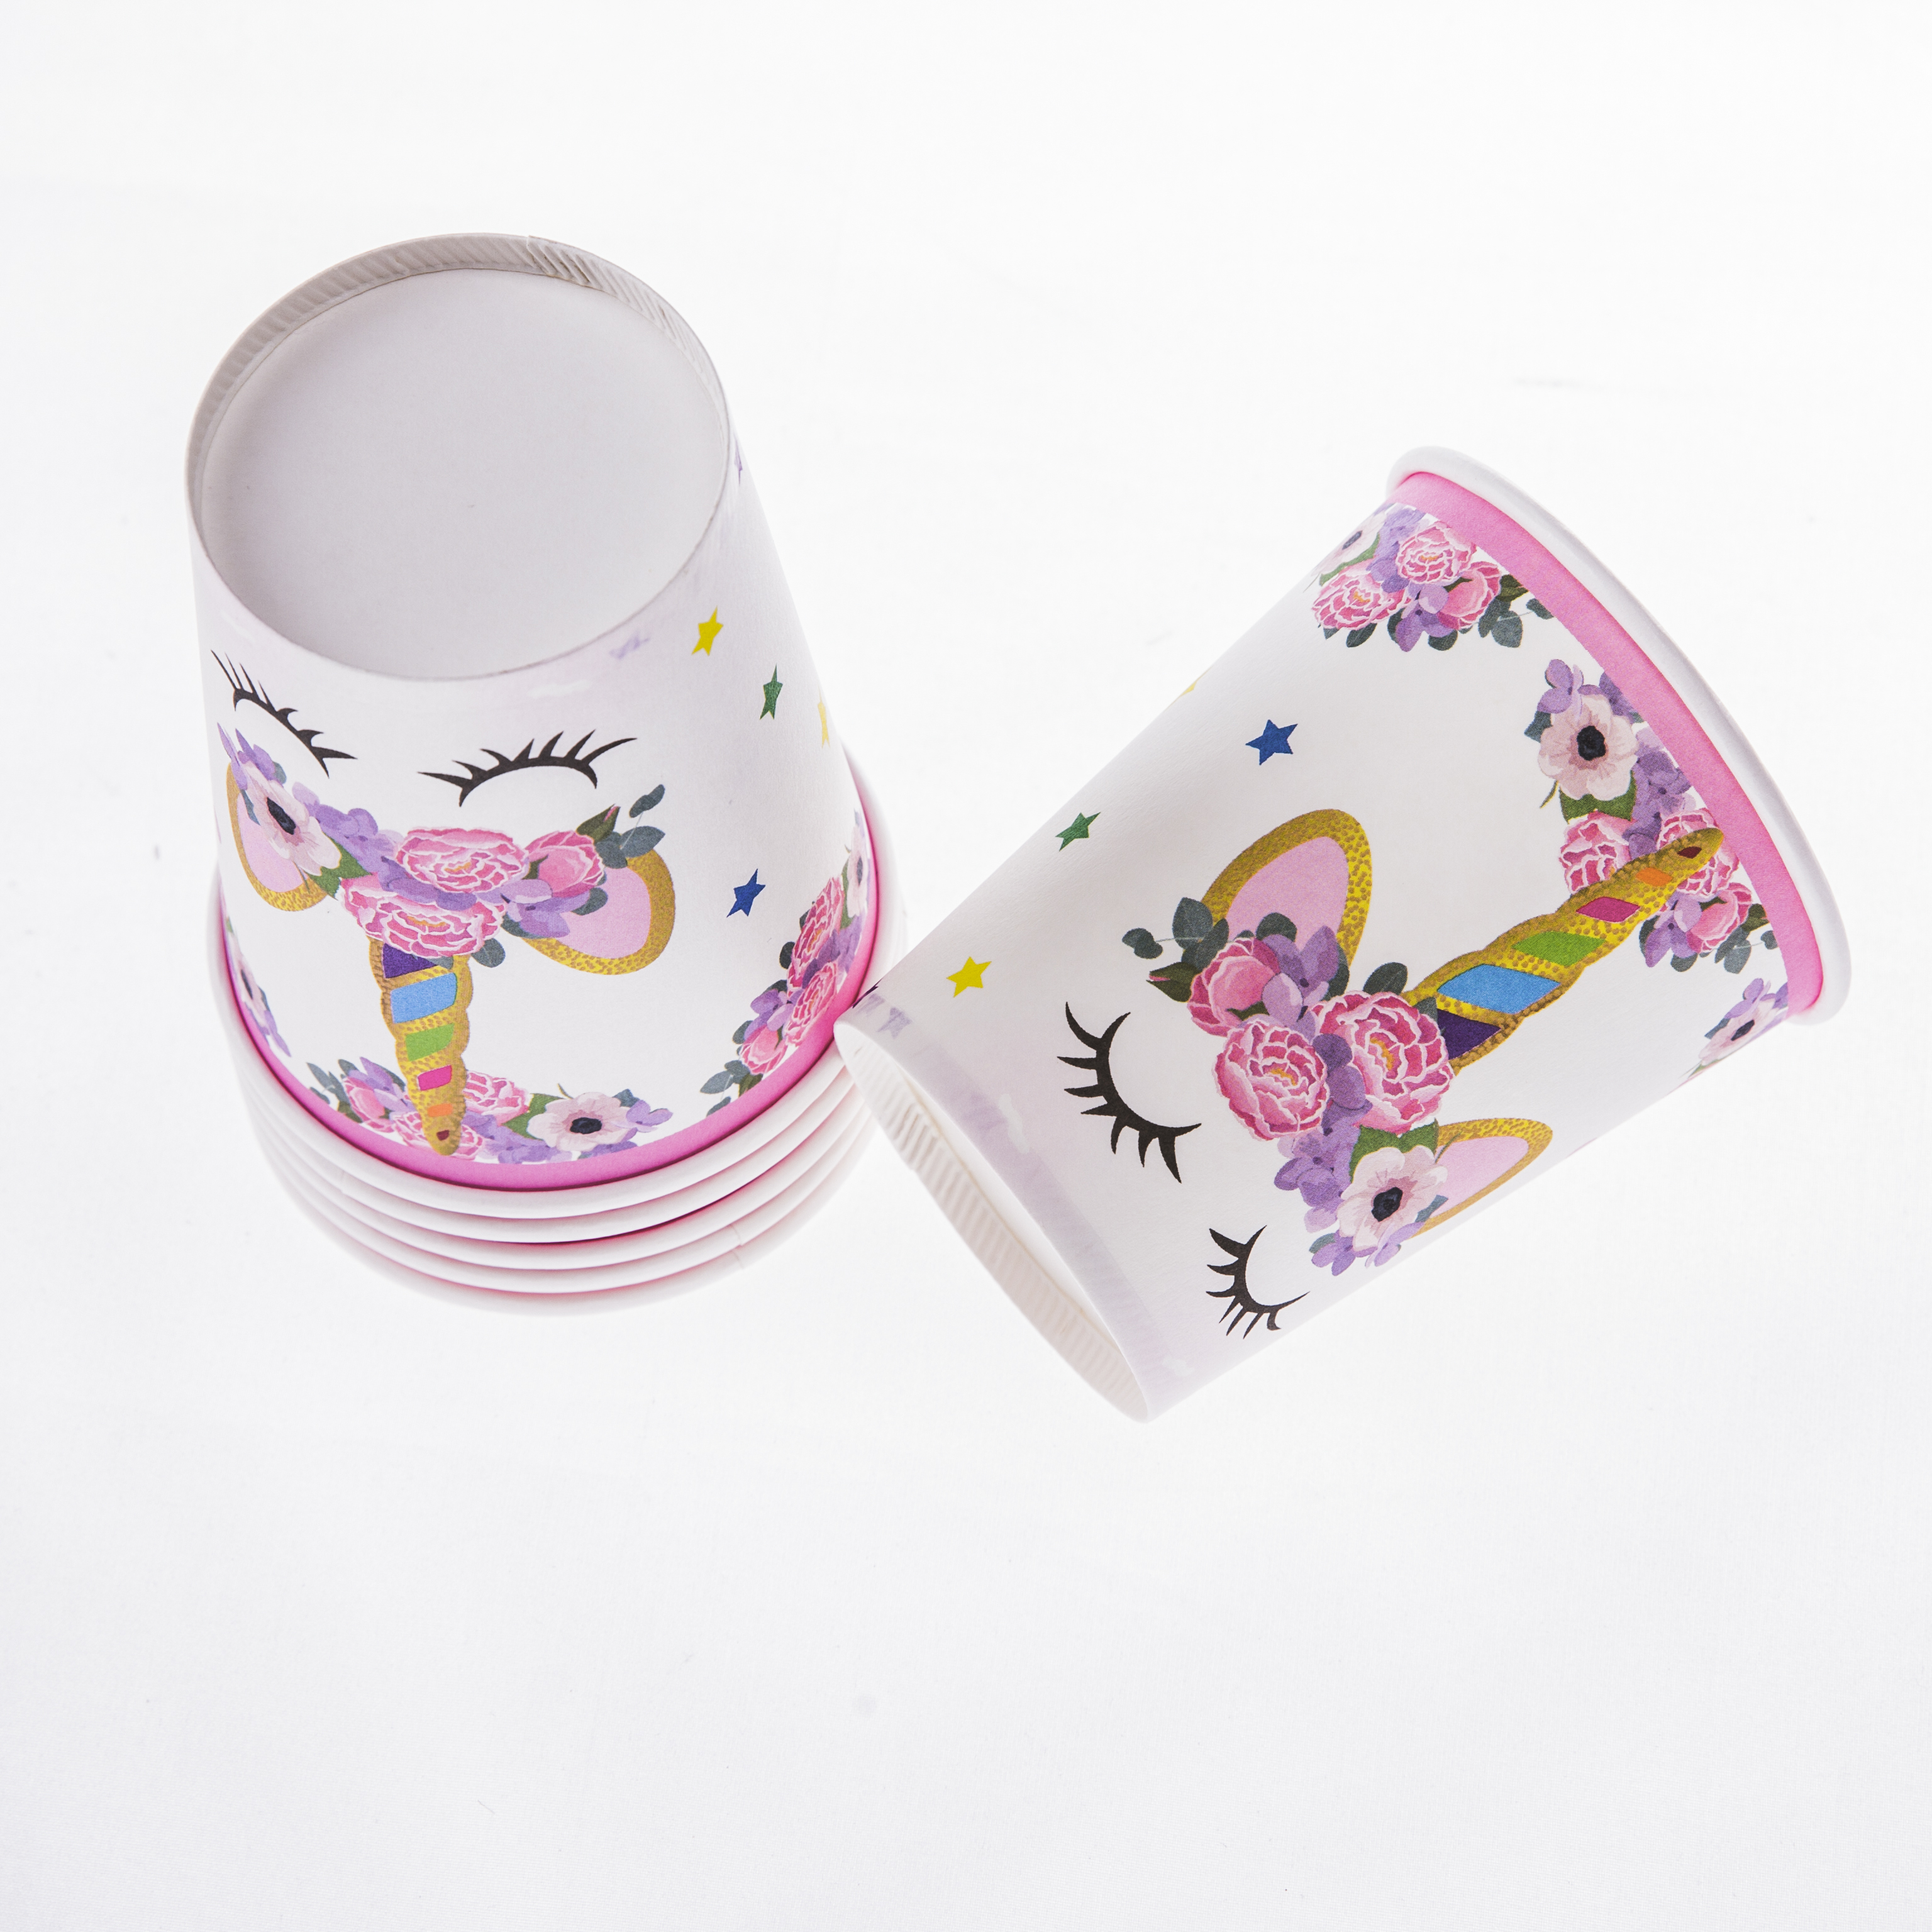 Unicorn theme theme event birthday theme party disposable tableware paper cup cartoon kid's party